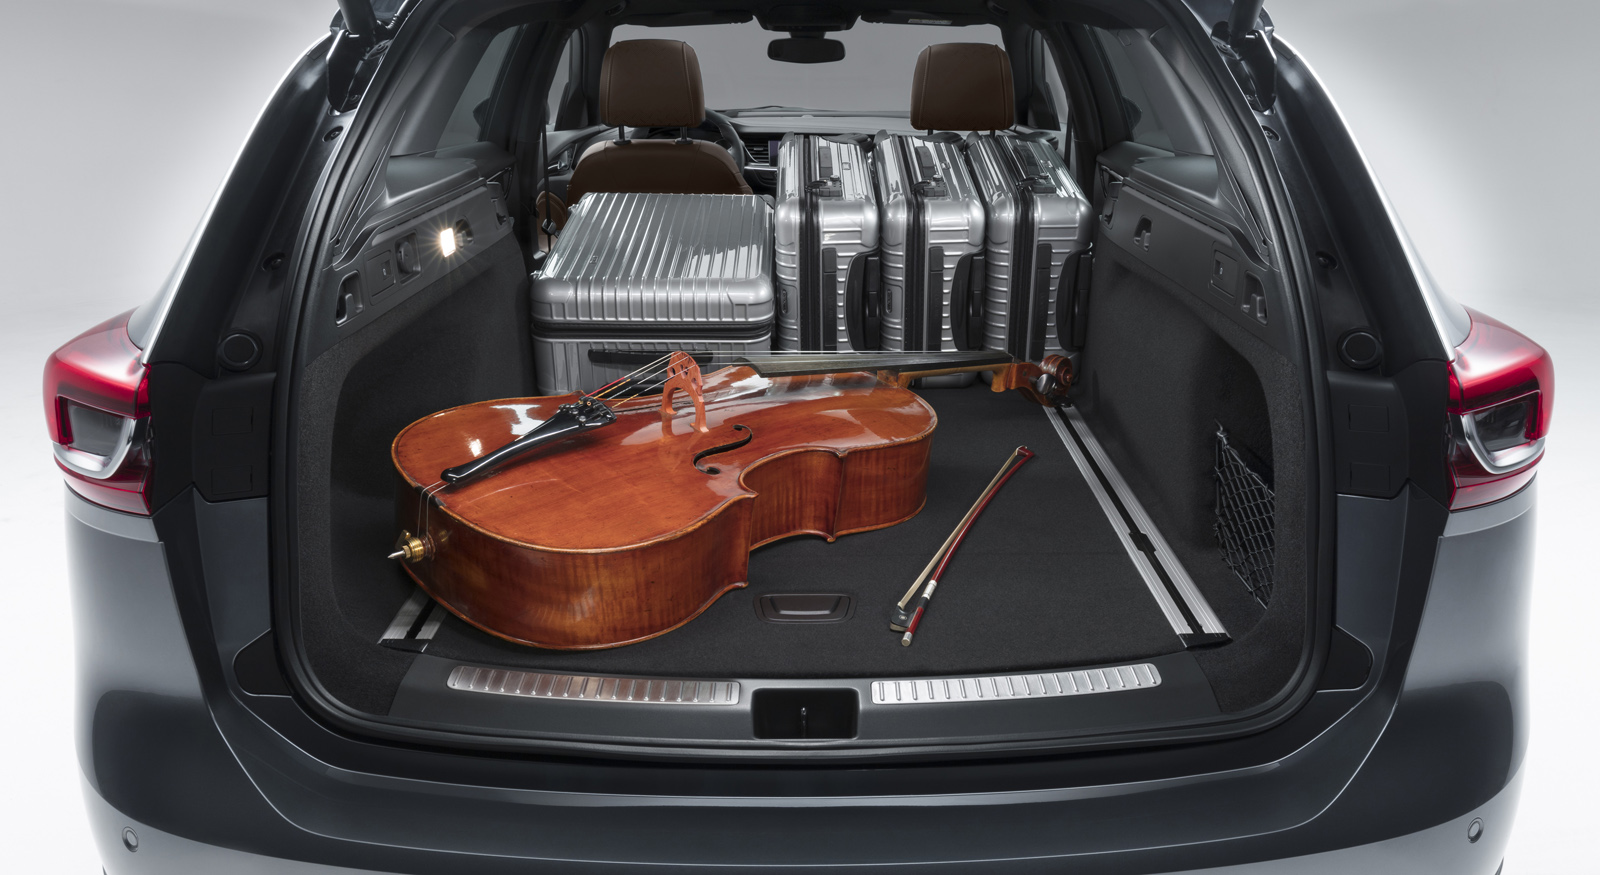 Cavernous: The trunk volume of the new Opel Insignia Sports Tourer increases at the push of a button to 1,640 liters – 100 liters more than the predecessor – by folding the rear seats.